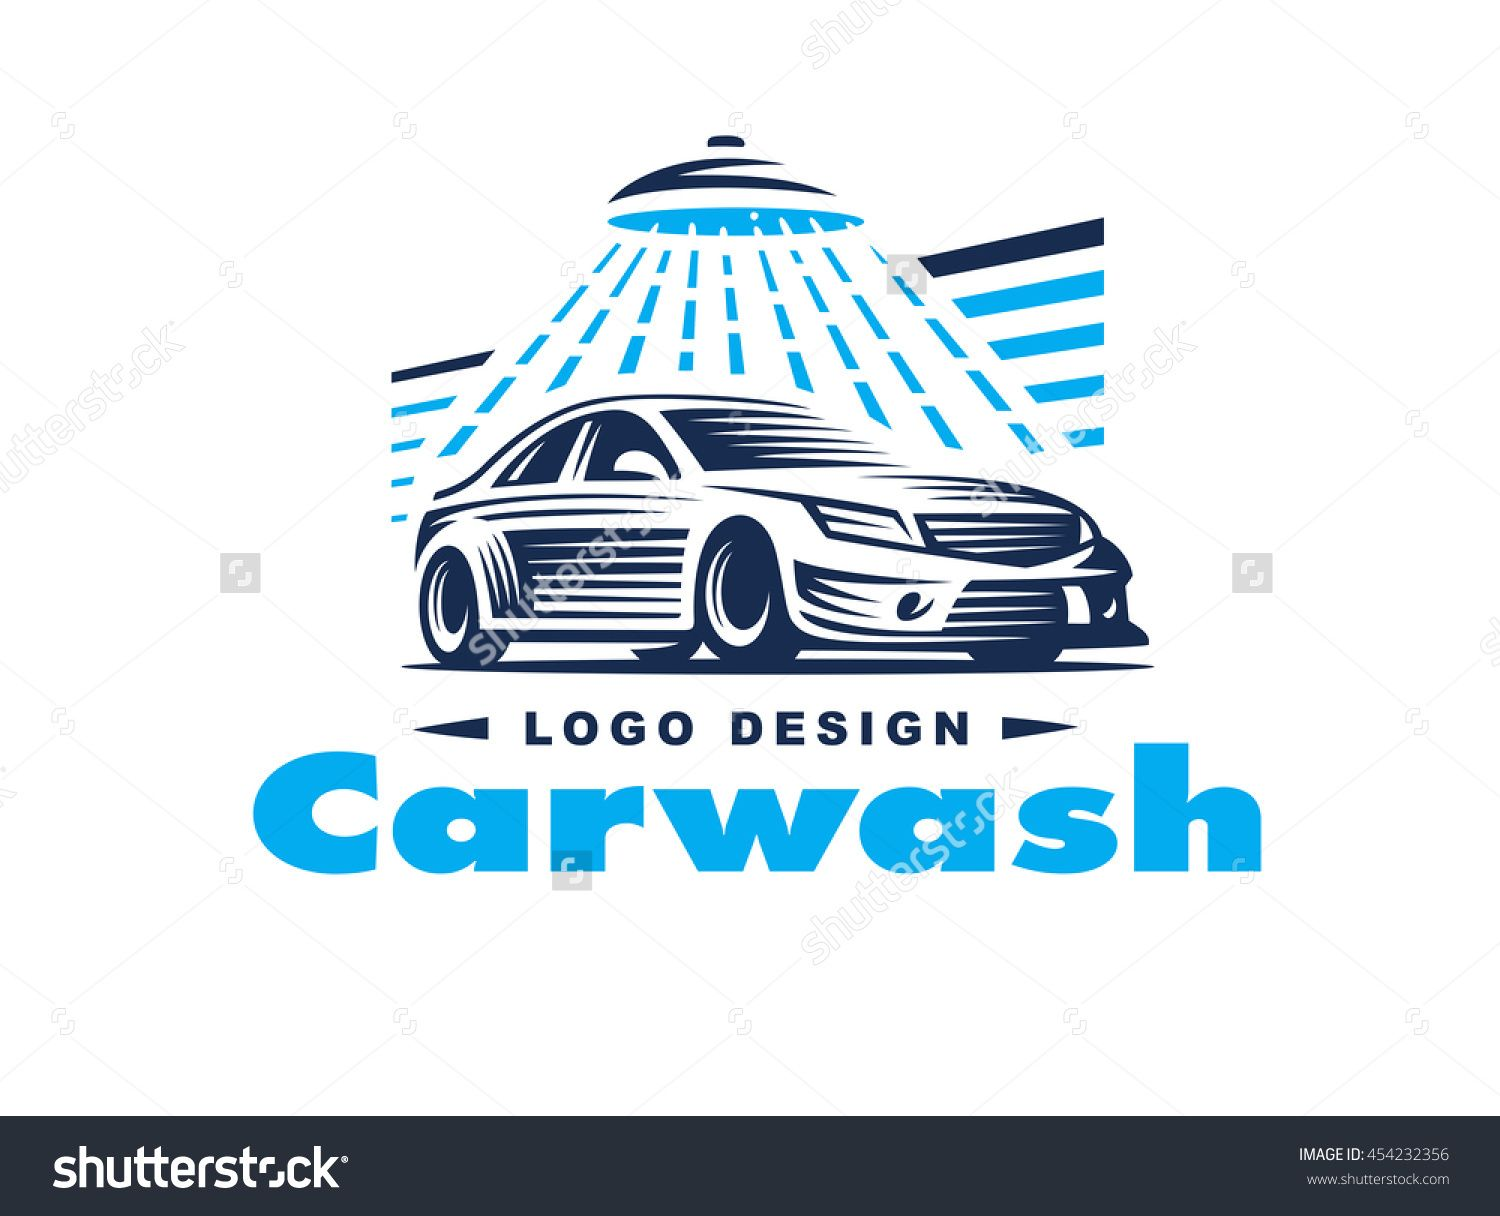 Pin by Костянтин К. on Логотипи Logos, Car wash, S logo